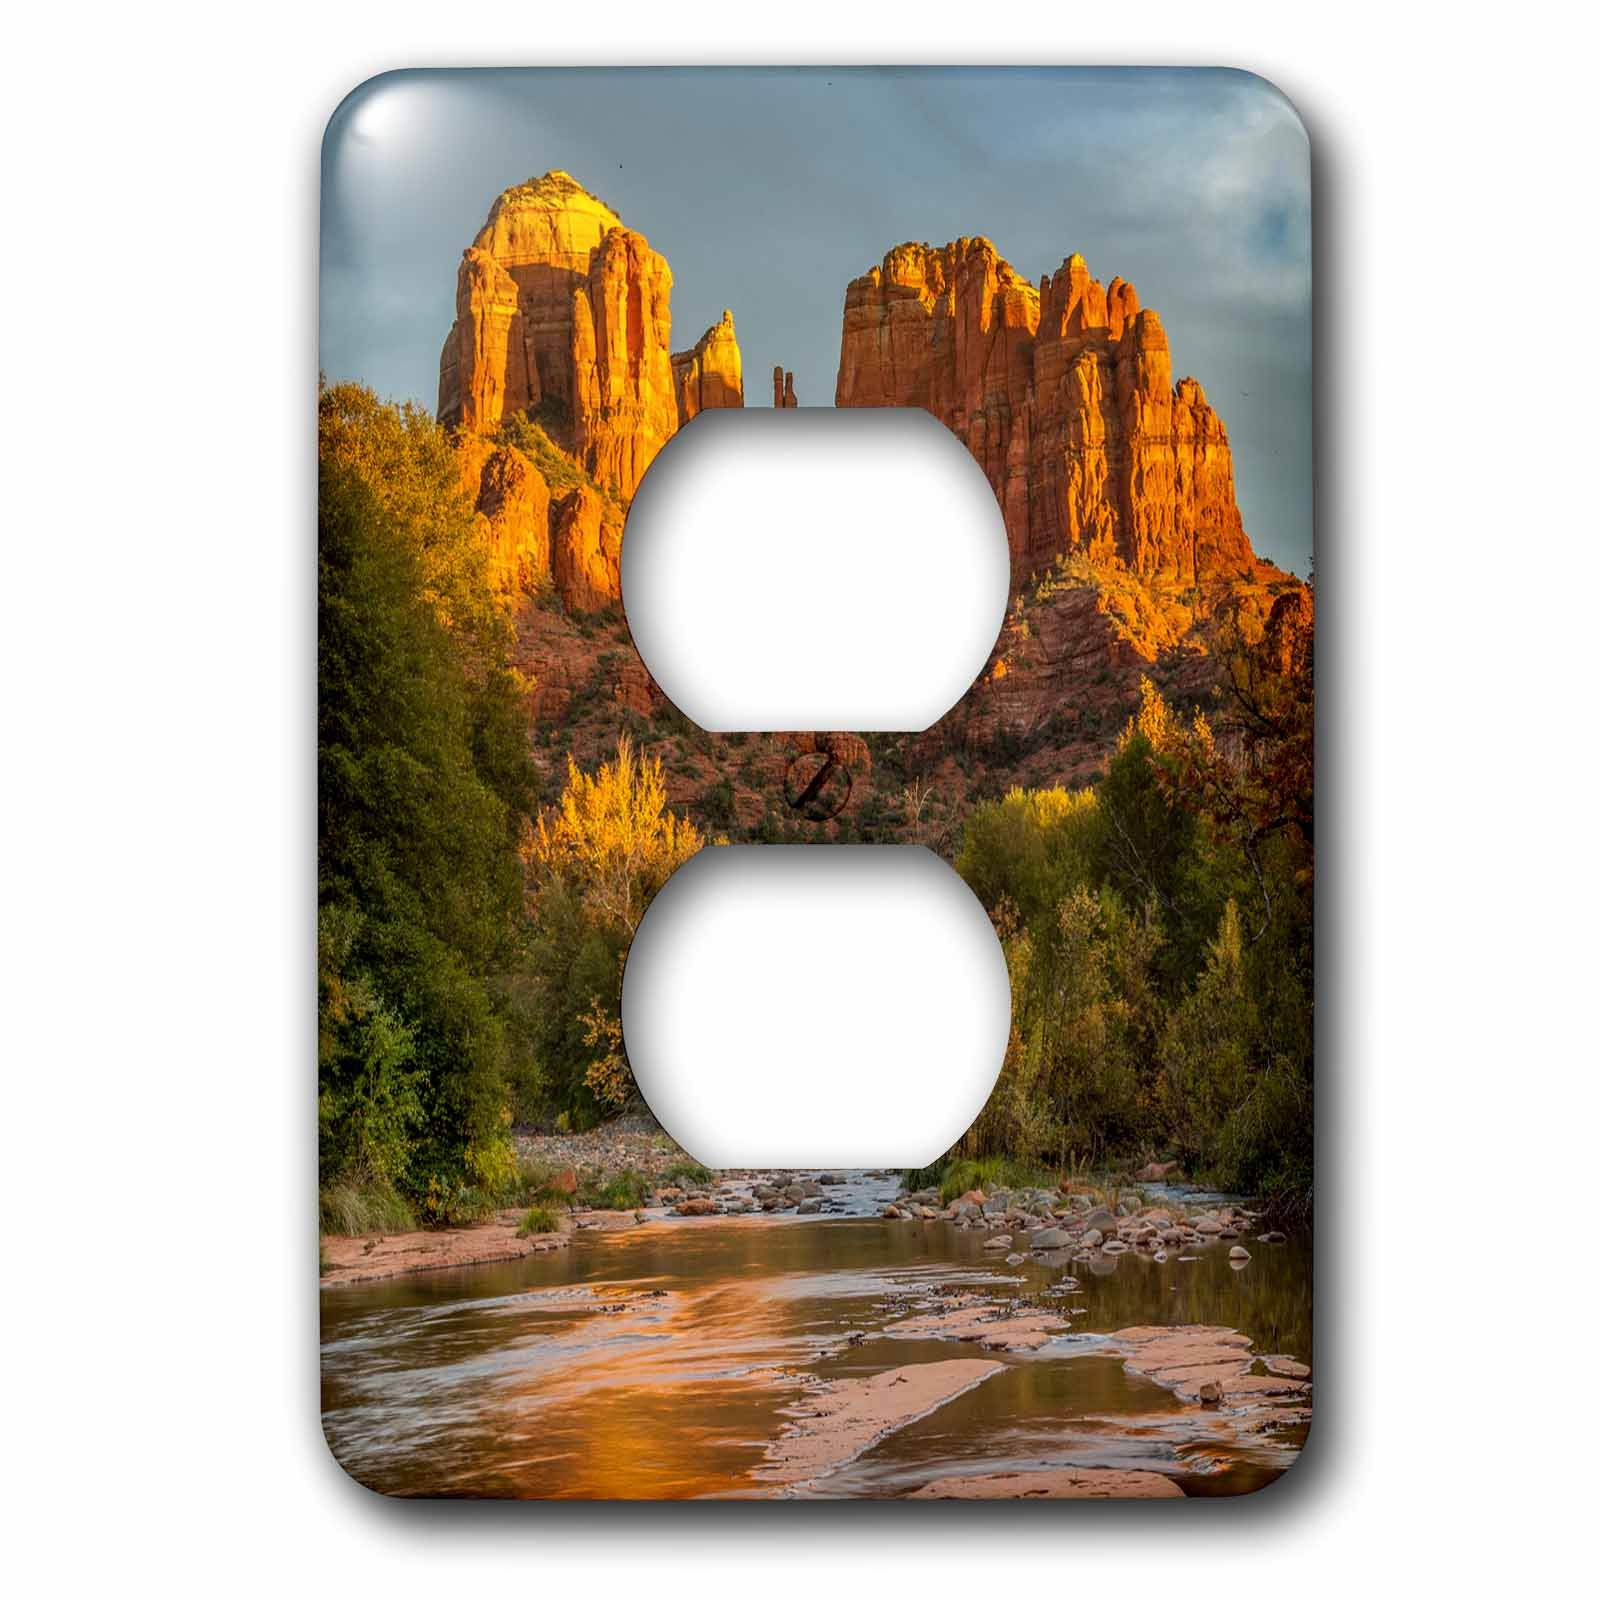 3dRose Danita Delimont - Deserts - USA, Arizona, Sedona, Cathedral Rock - Light Switch Covers - 2 plug outlet cover (lsp_278451_6) by 3dRose